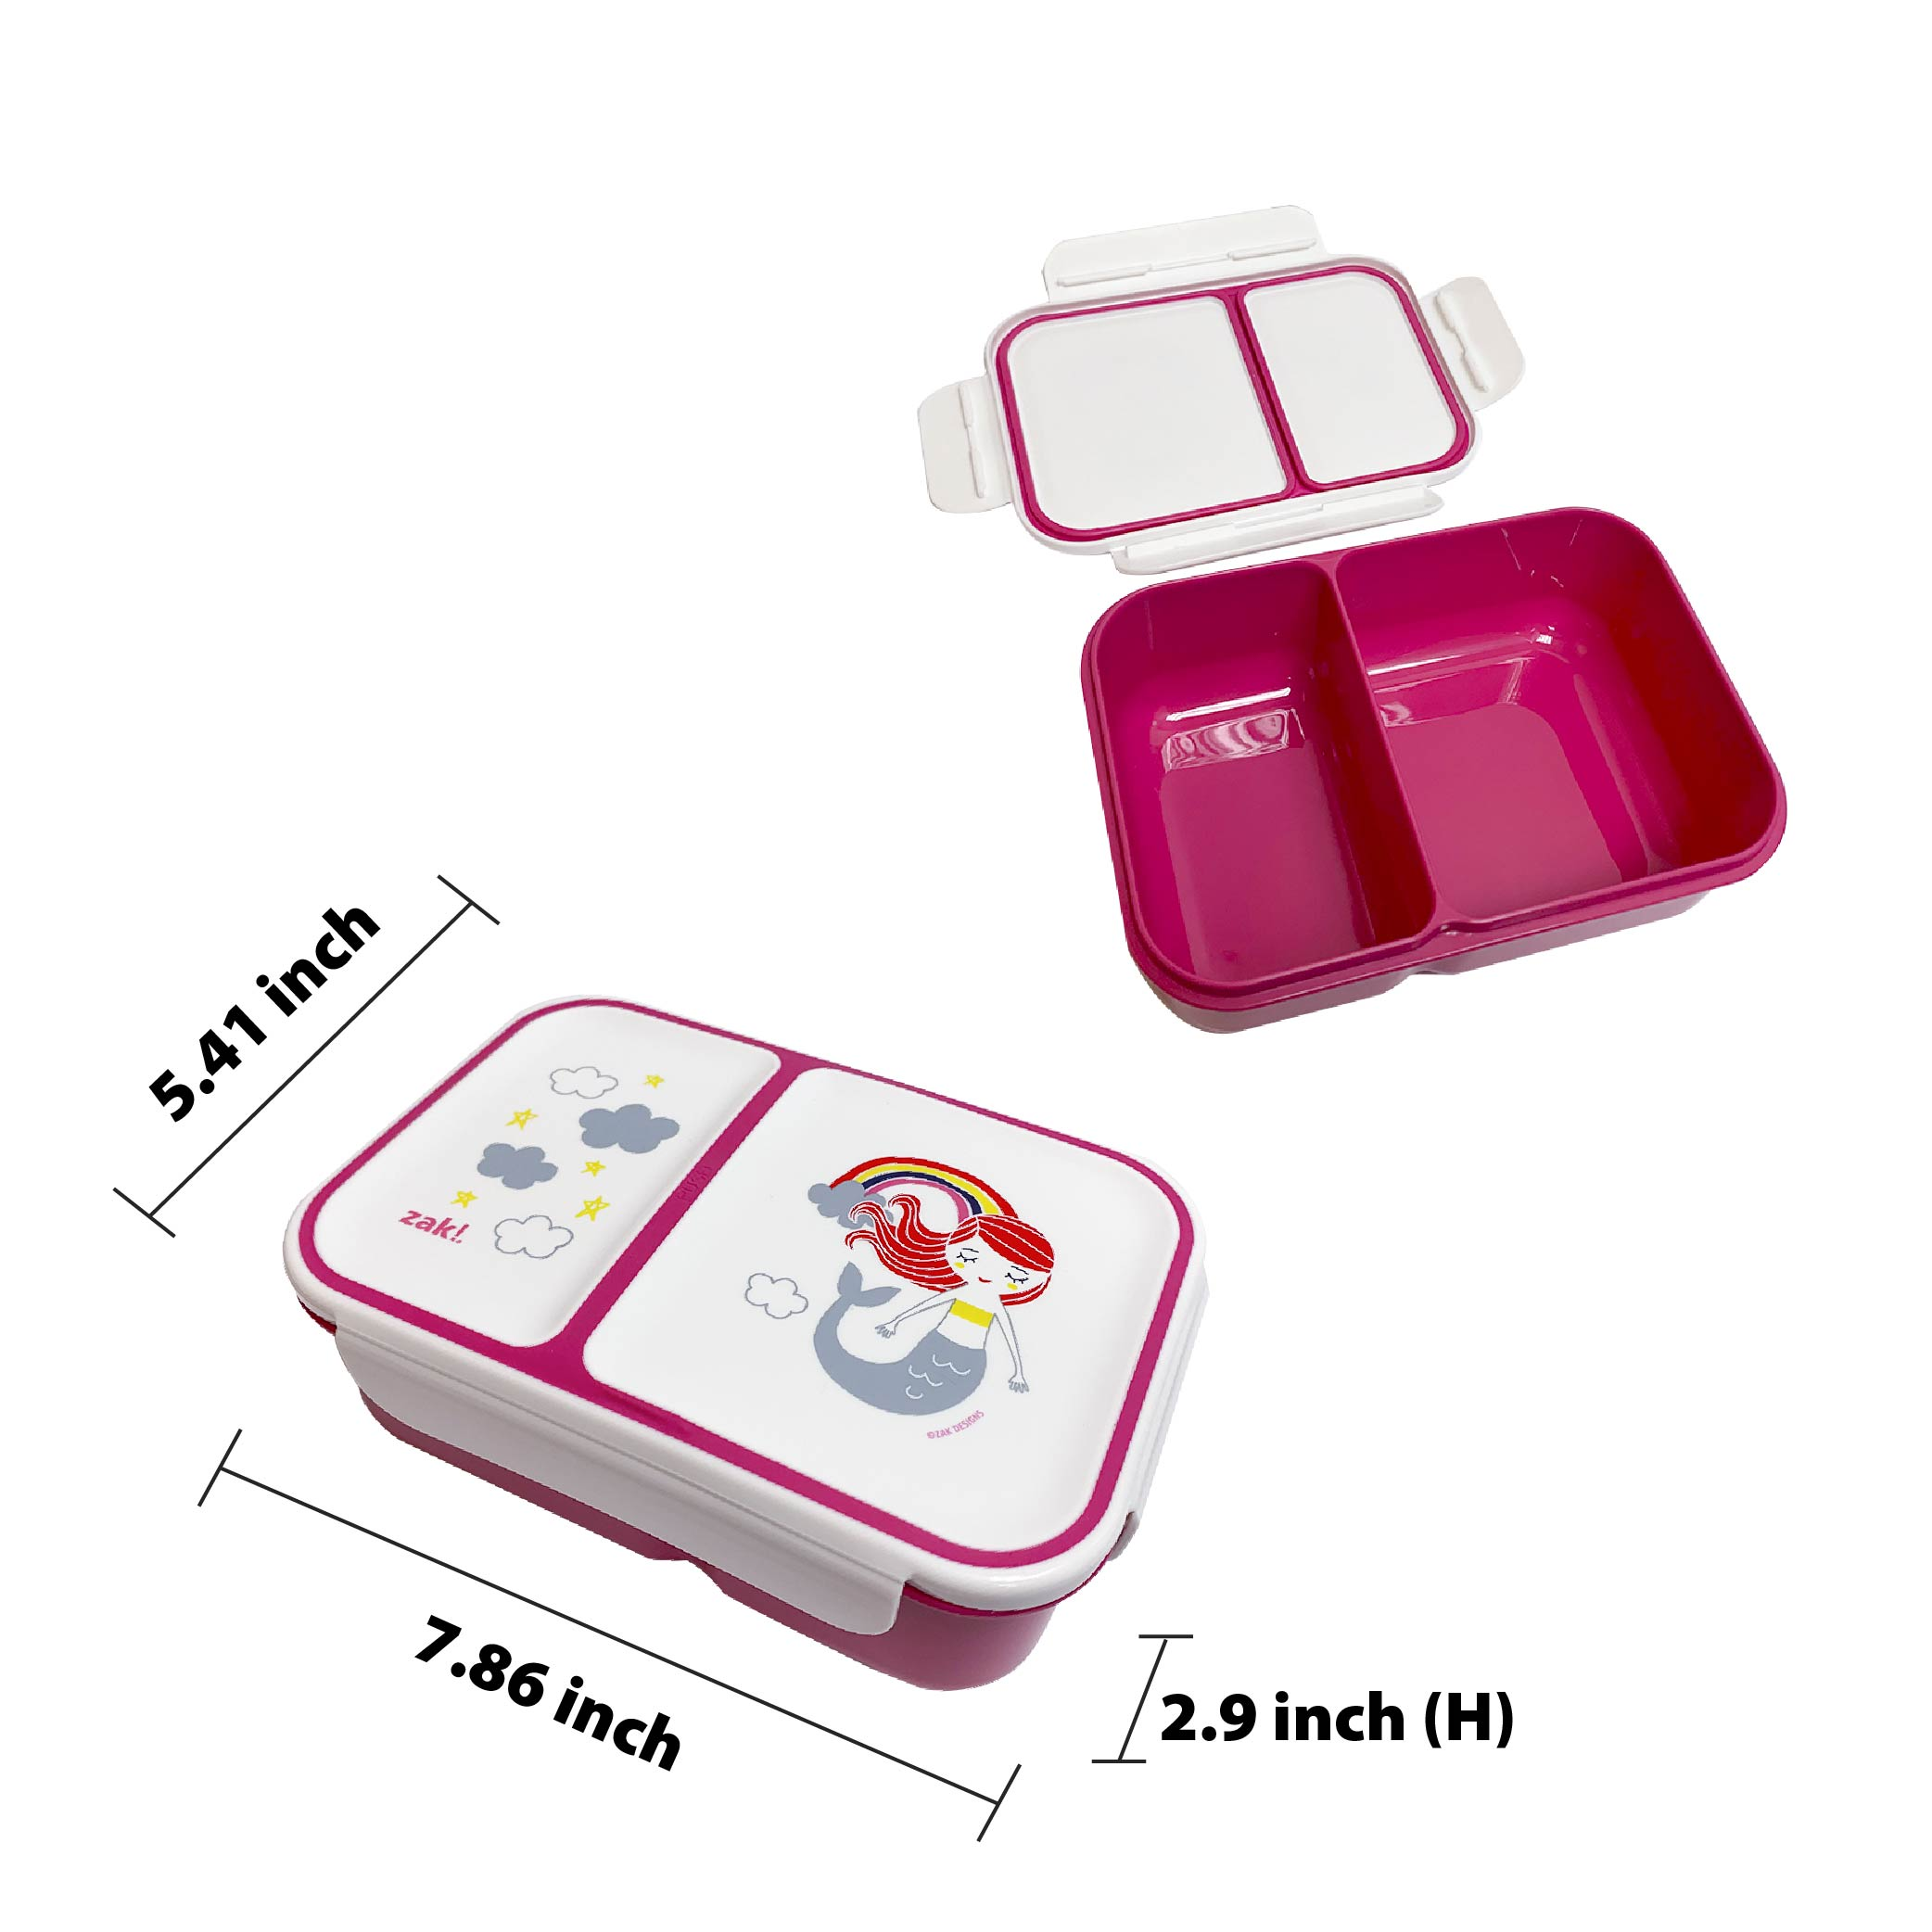 Happy Things Dual-compartment Reusable Bento Box, Mermaids slideshow image 5